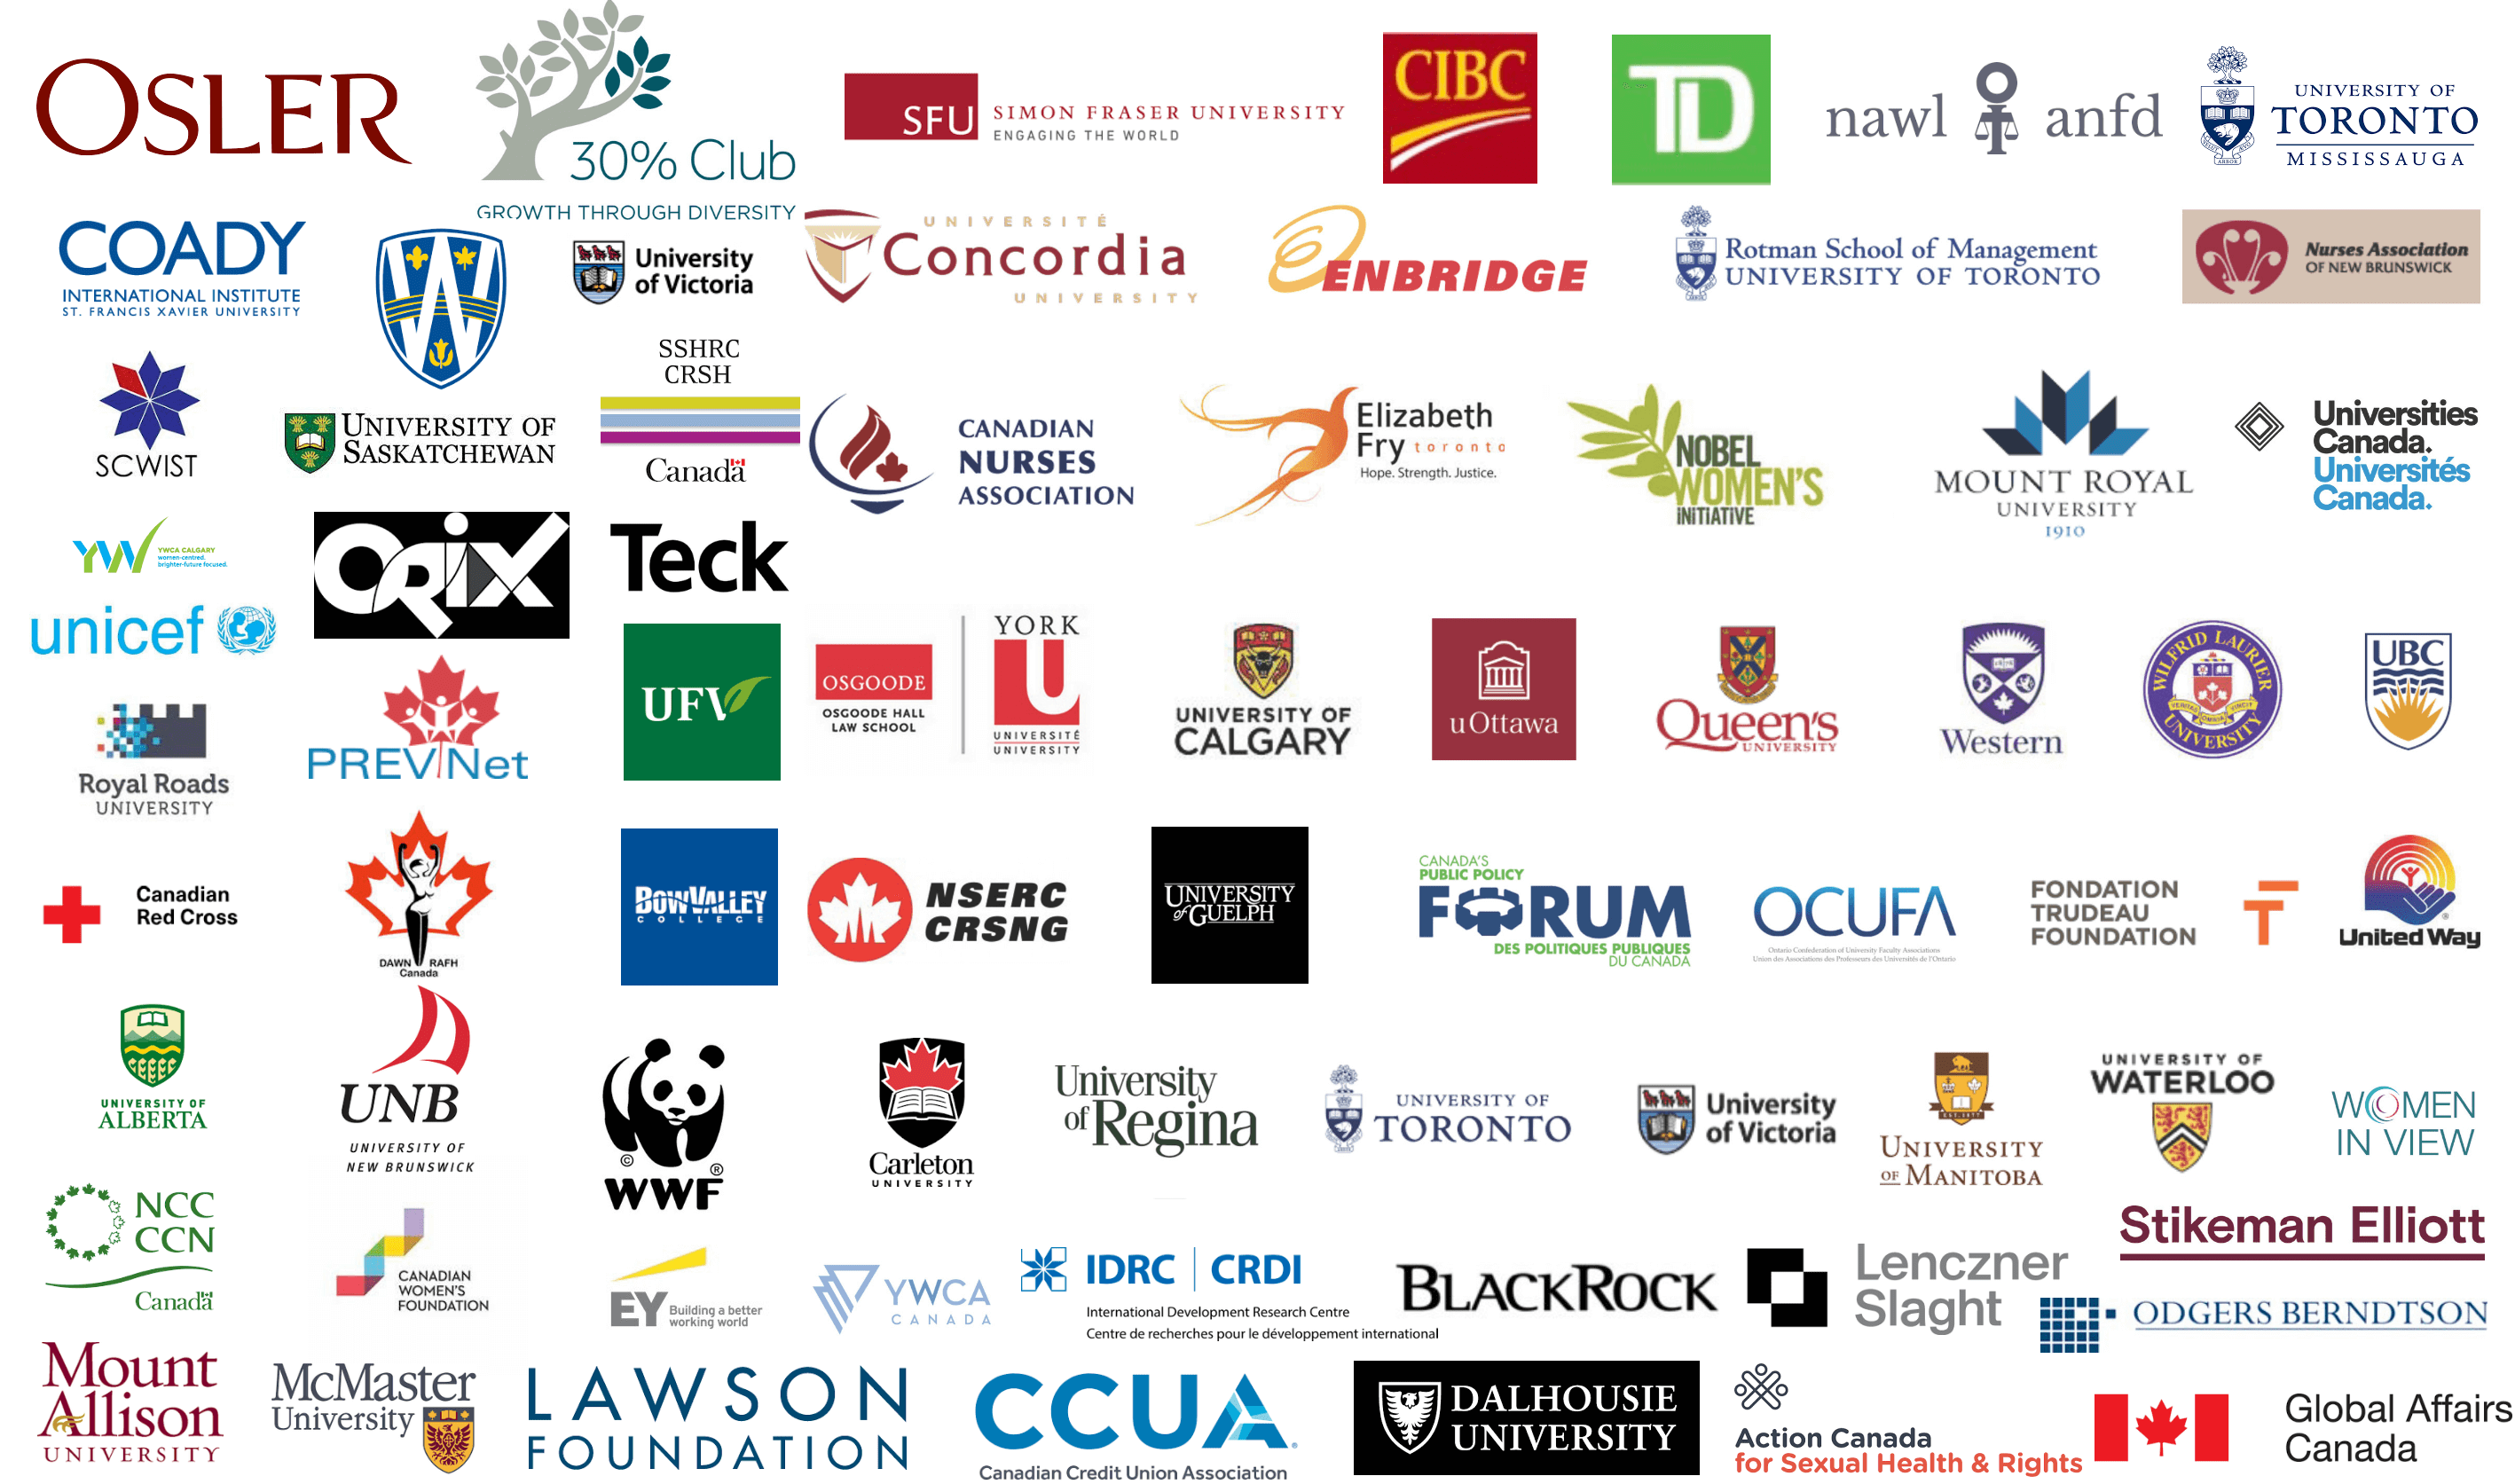 Our partners logos